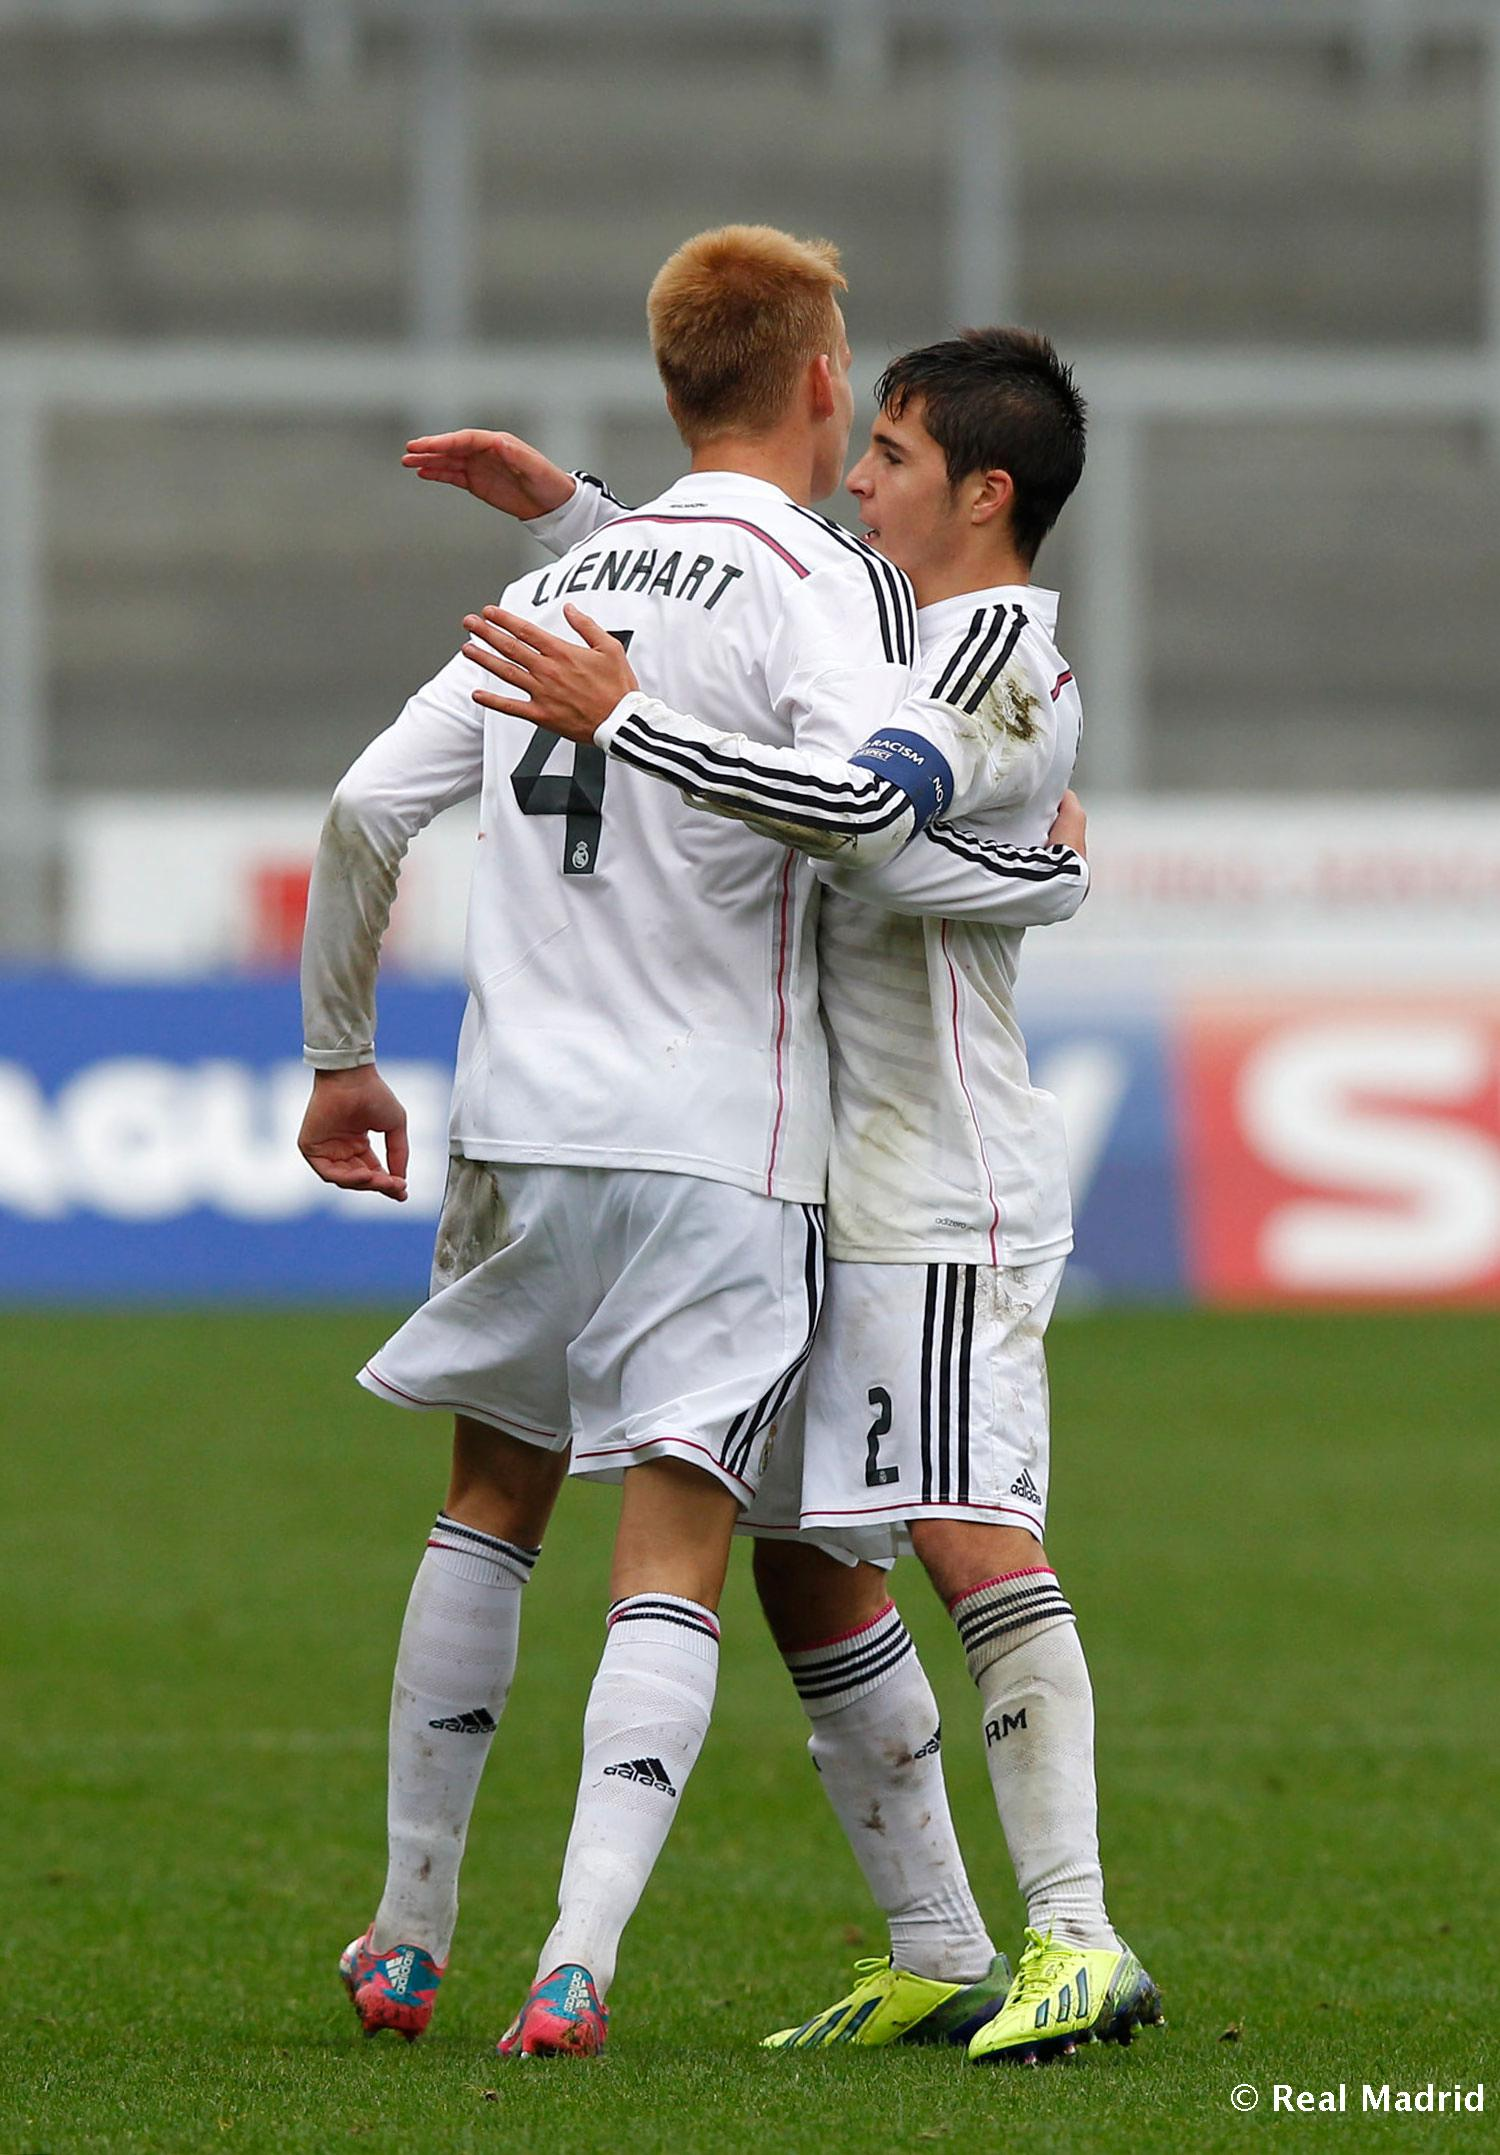 Real Madrid - Liverpool - Juvenil A - 22-10-2014